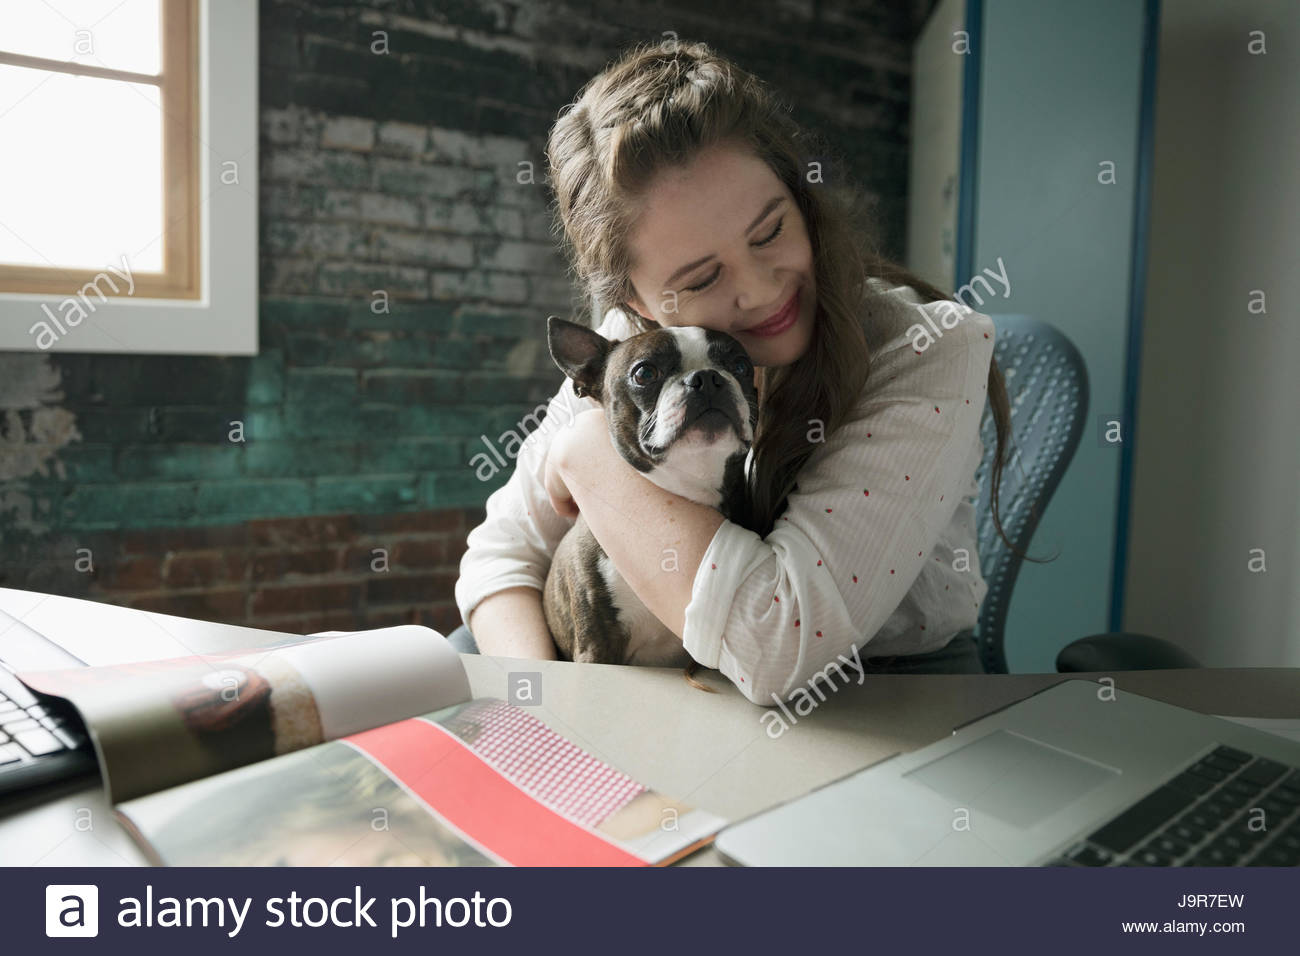 Smiling creative businesswoman hugging dog in lap at desk - Stock Image